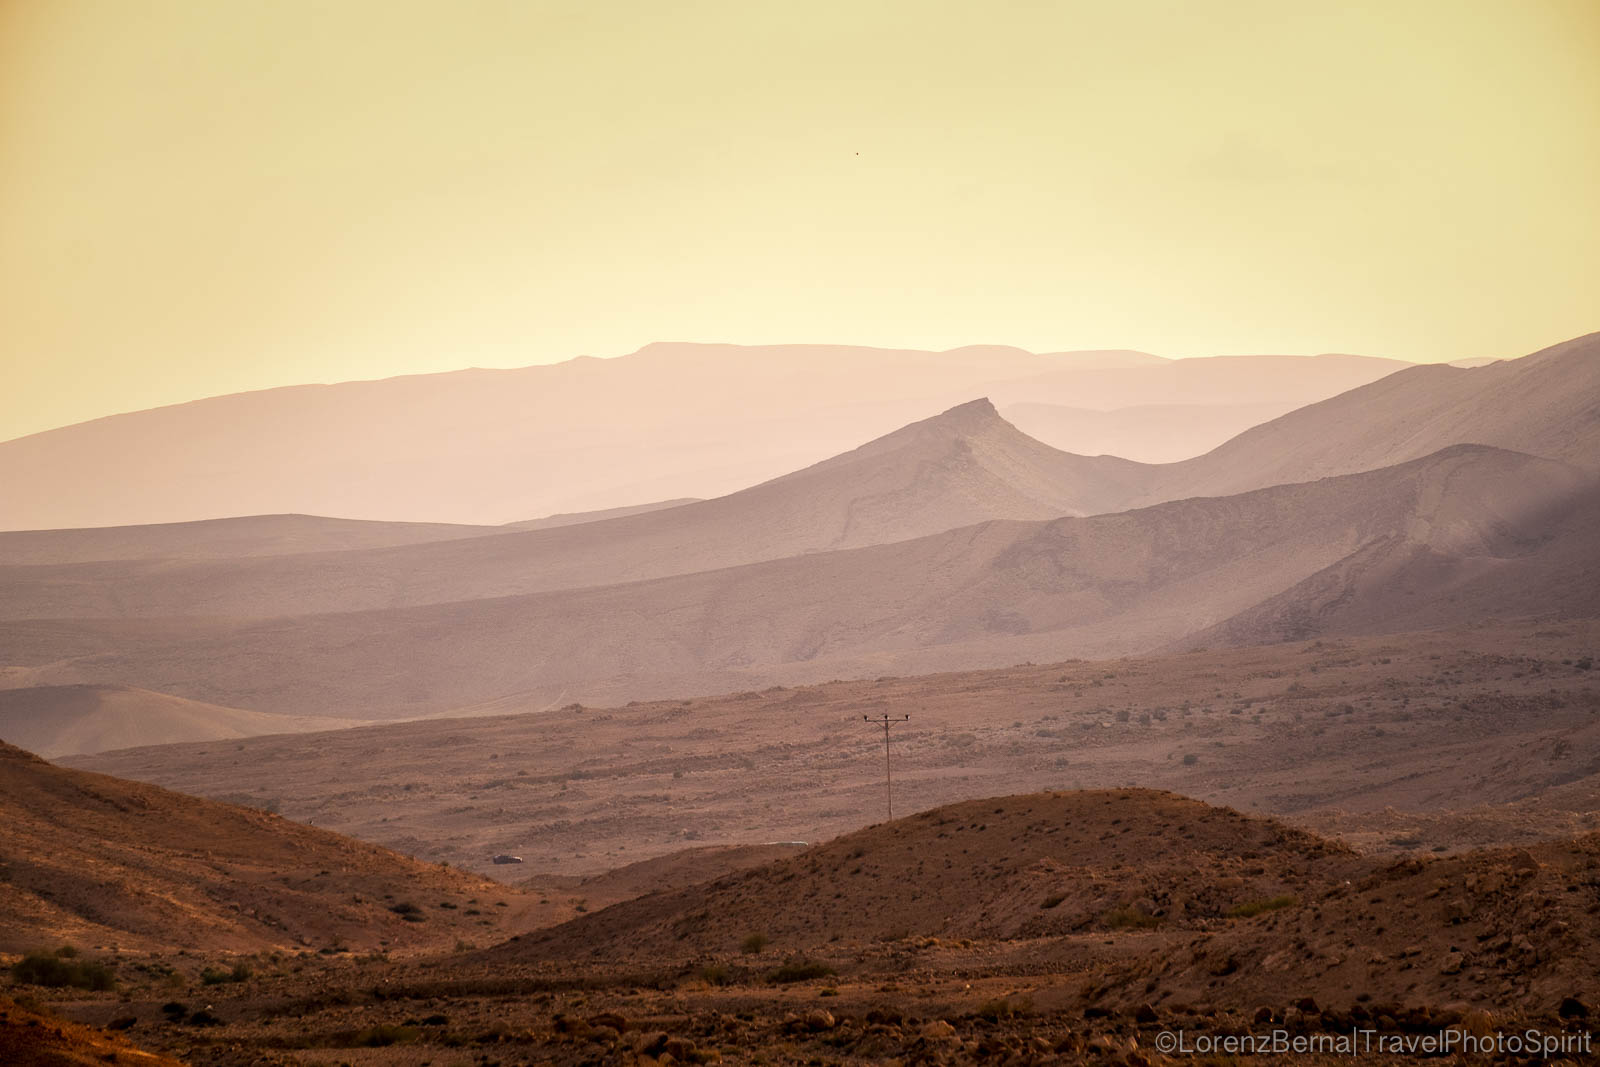 Landscape of the Negev Desert, the Northeastern part of the Judean Desert, Israel.